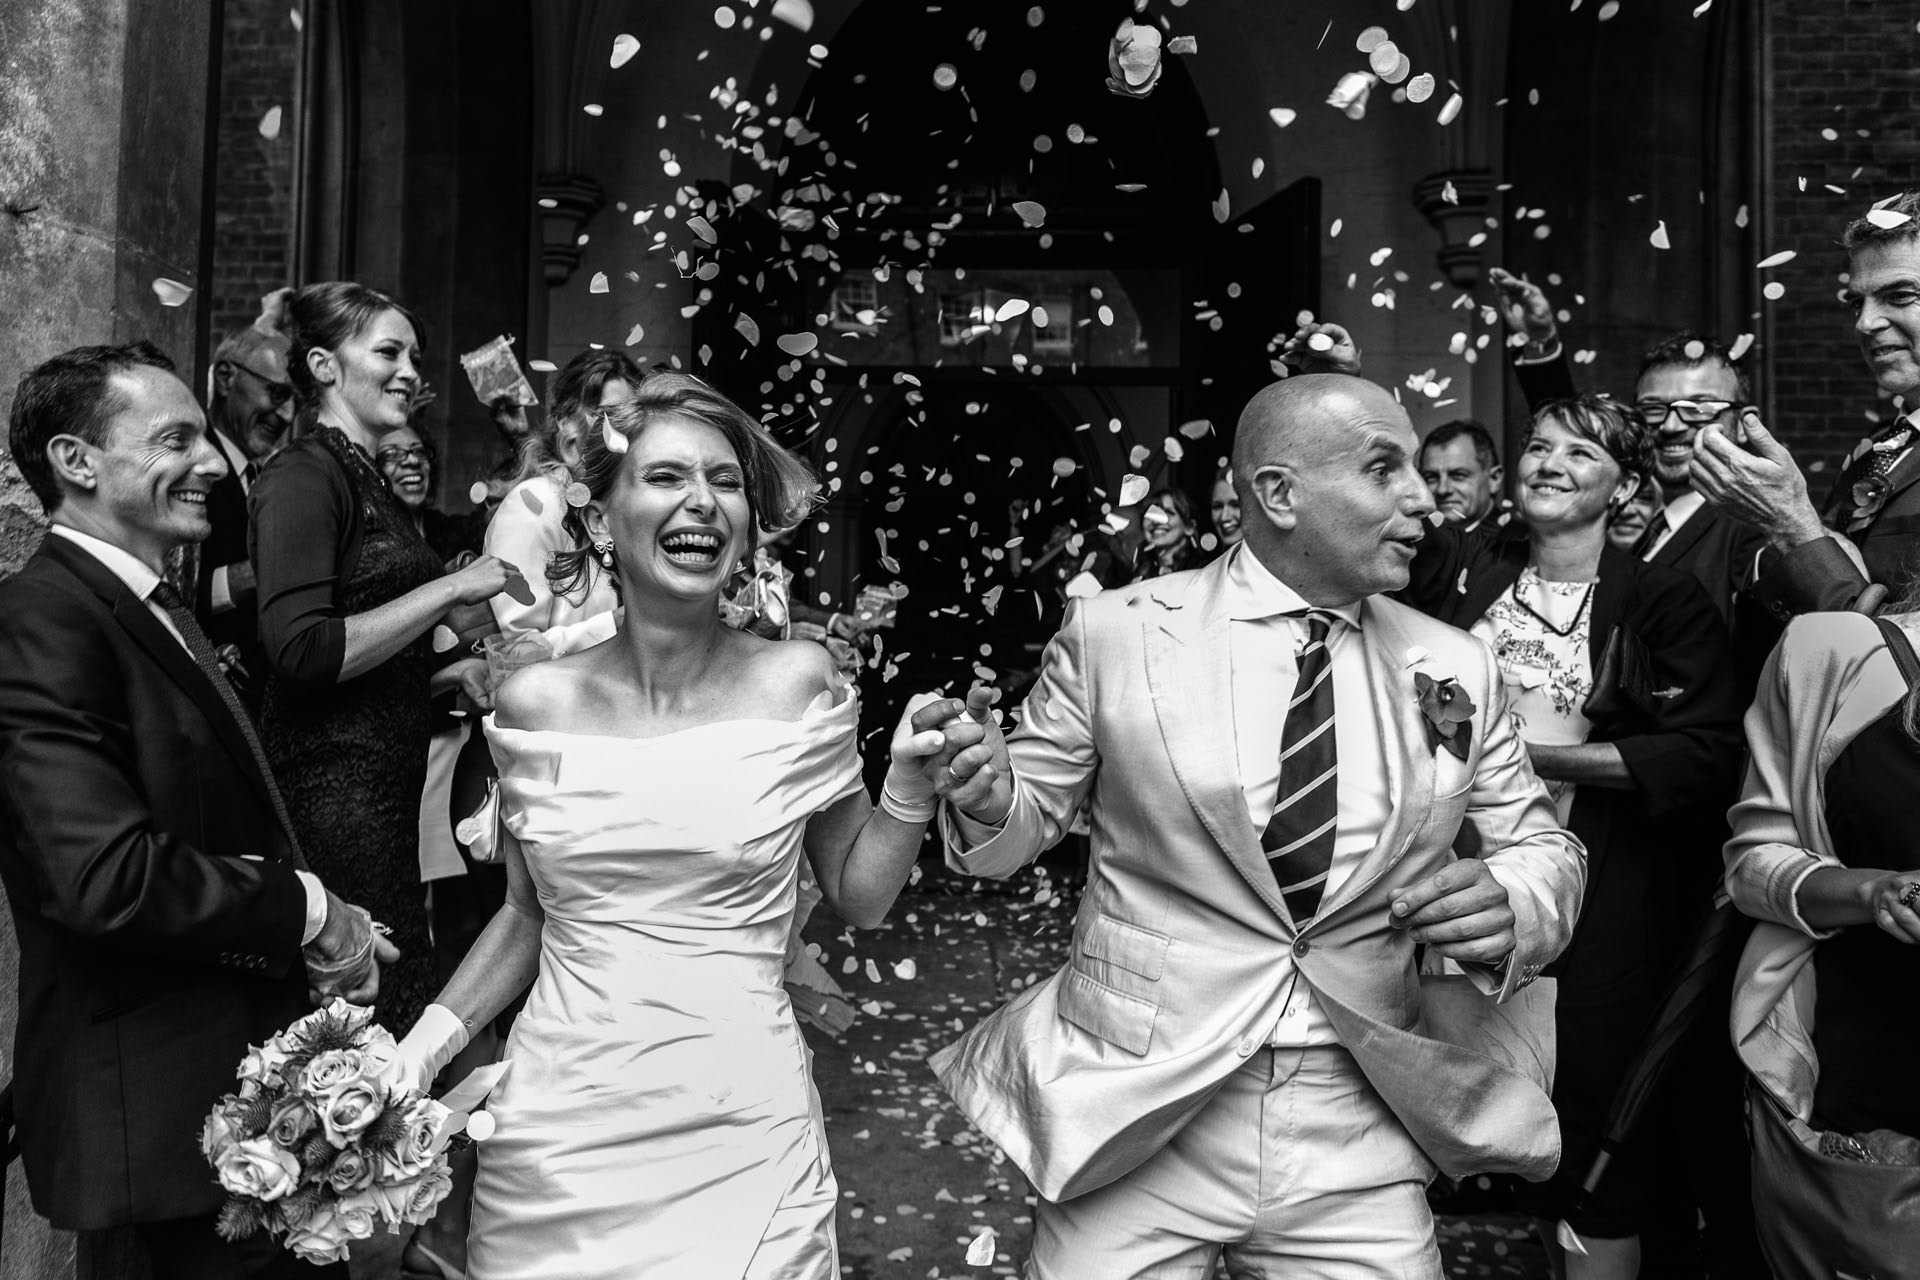 married couple running out from the church in Lonond showered with confetti and holding a big smile